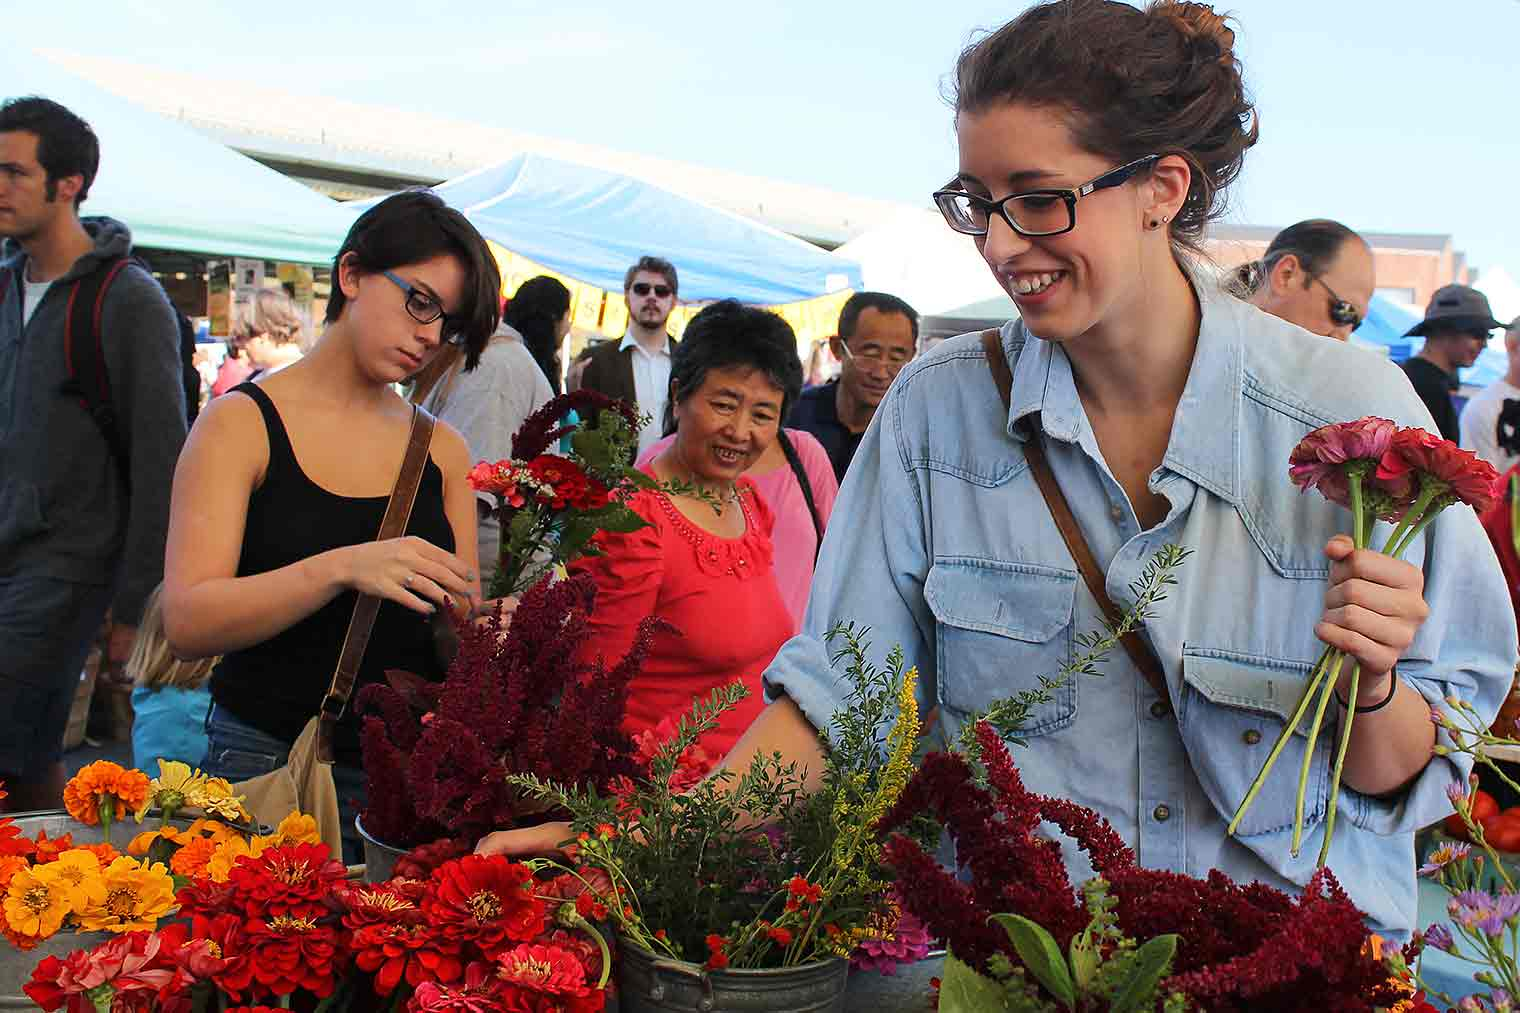 Two students purchasing flowers at the farmers' market